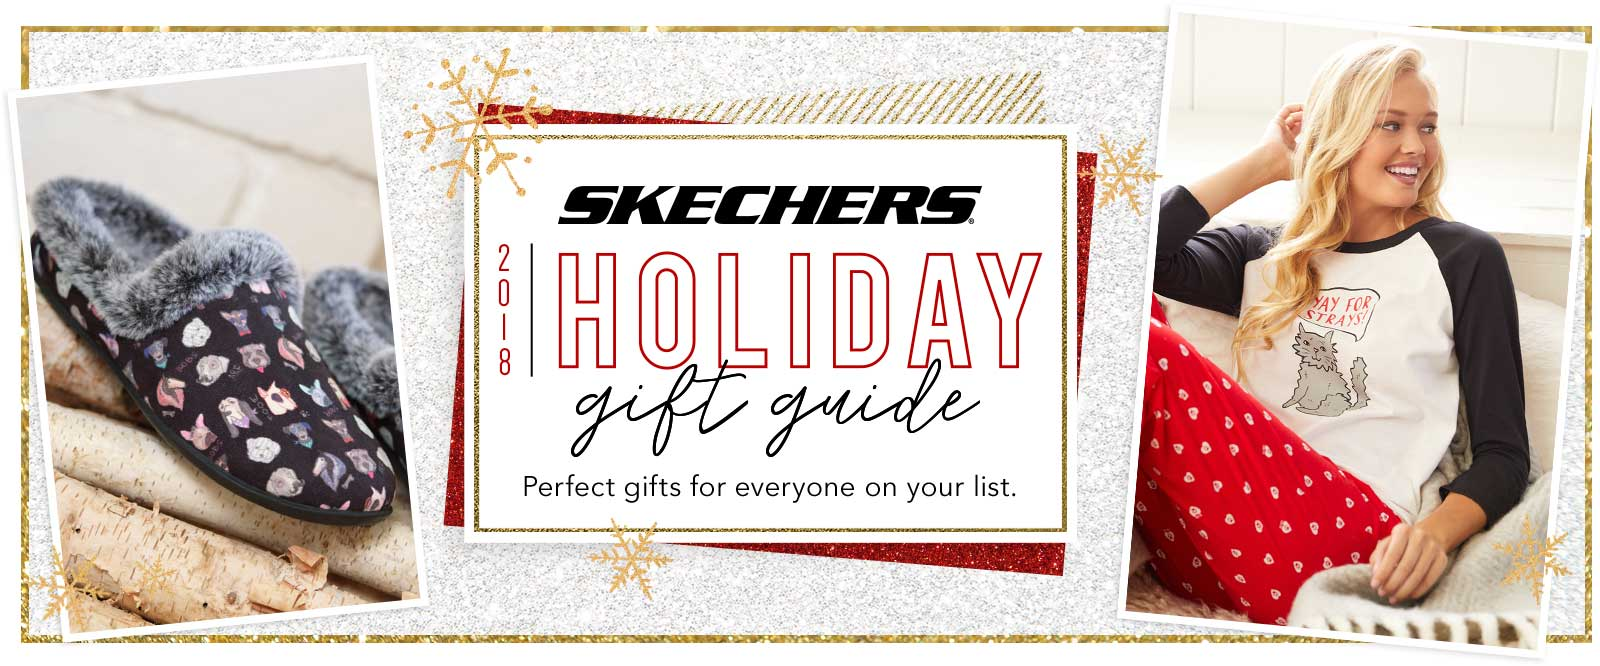 Get everyone on your holiday shopping list taken care of in style with the Skechers.com Holiday Gift Guide.  From athletic walking and running shoes to the most comfortable casuals, fashion boots and slippers to the hottest D'Lites sneakers, Skechers.com has all your holiday shopping needs handled